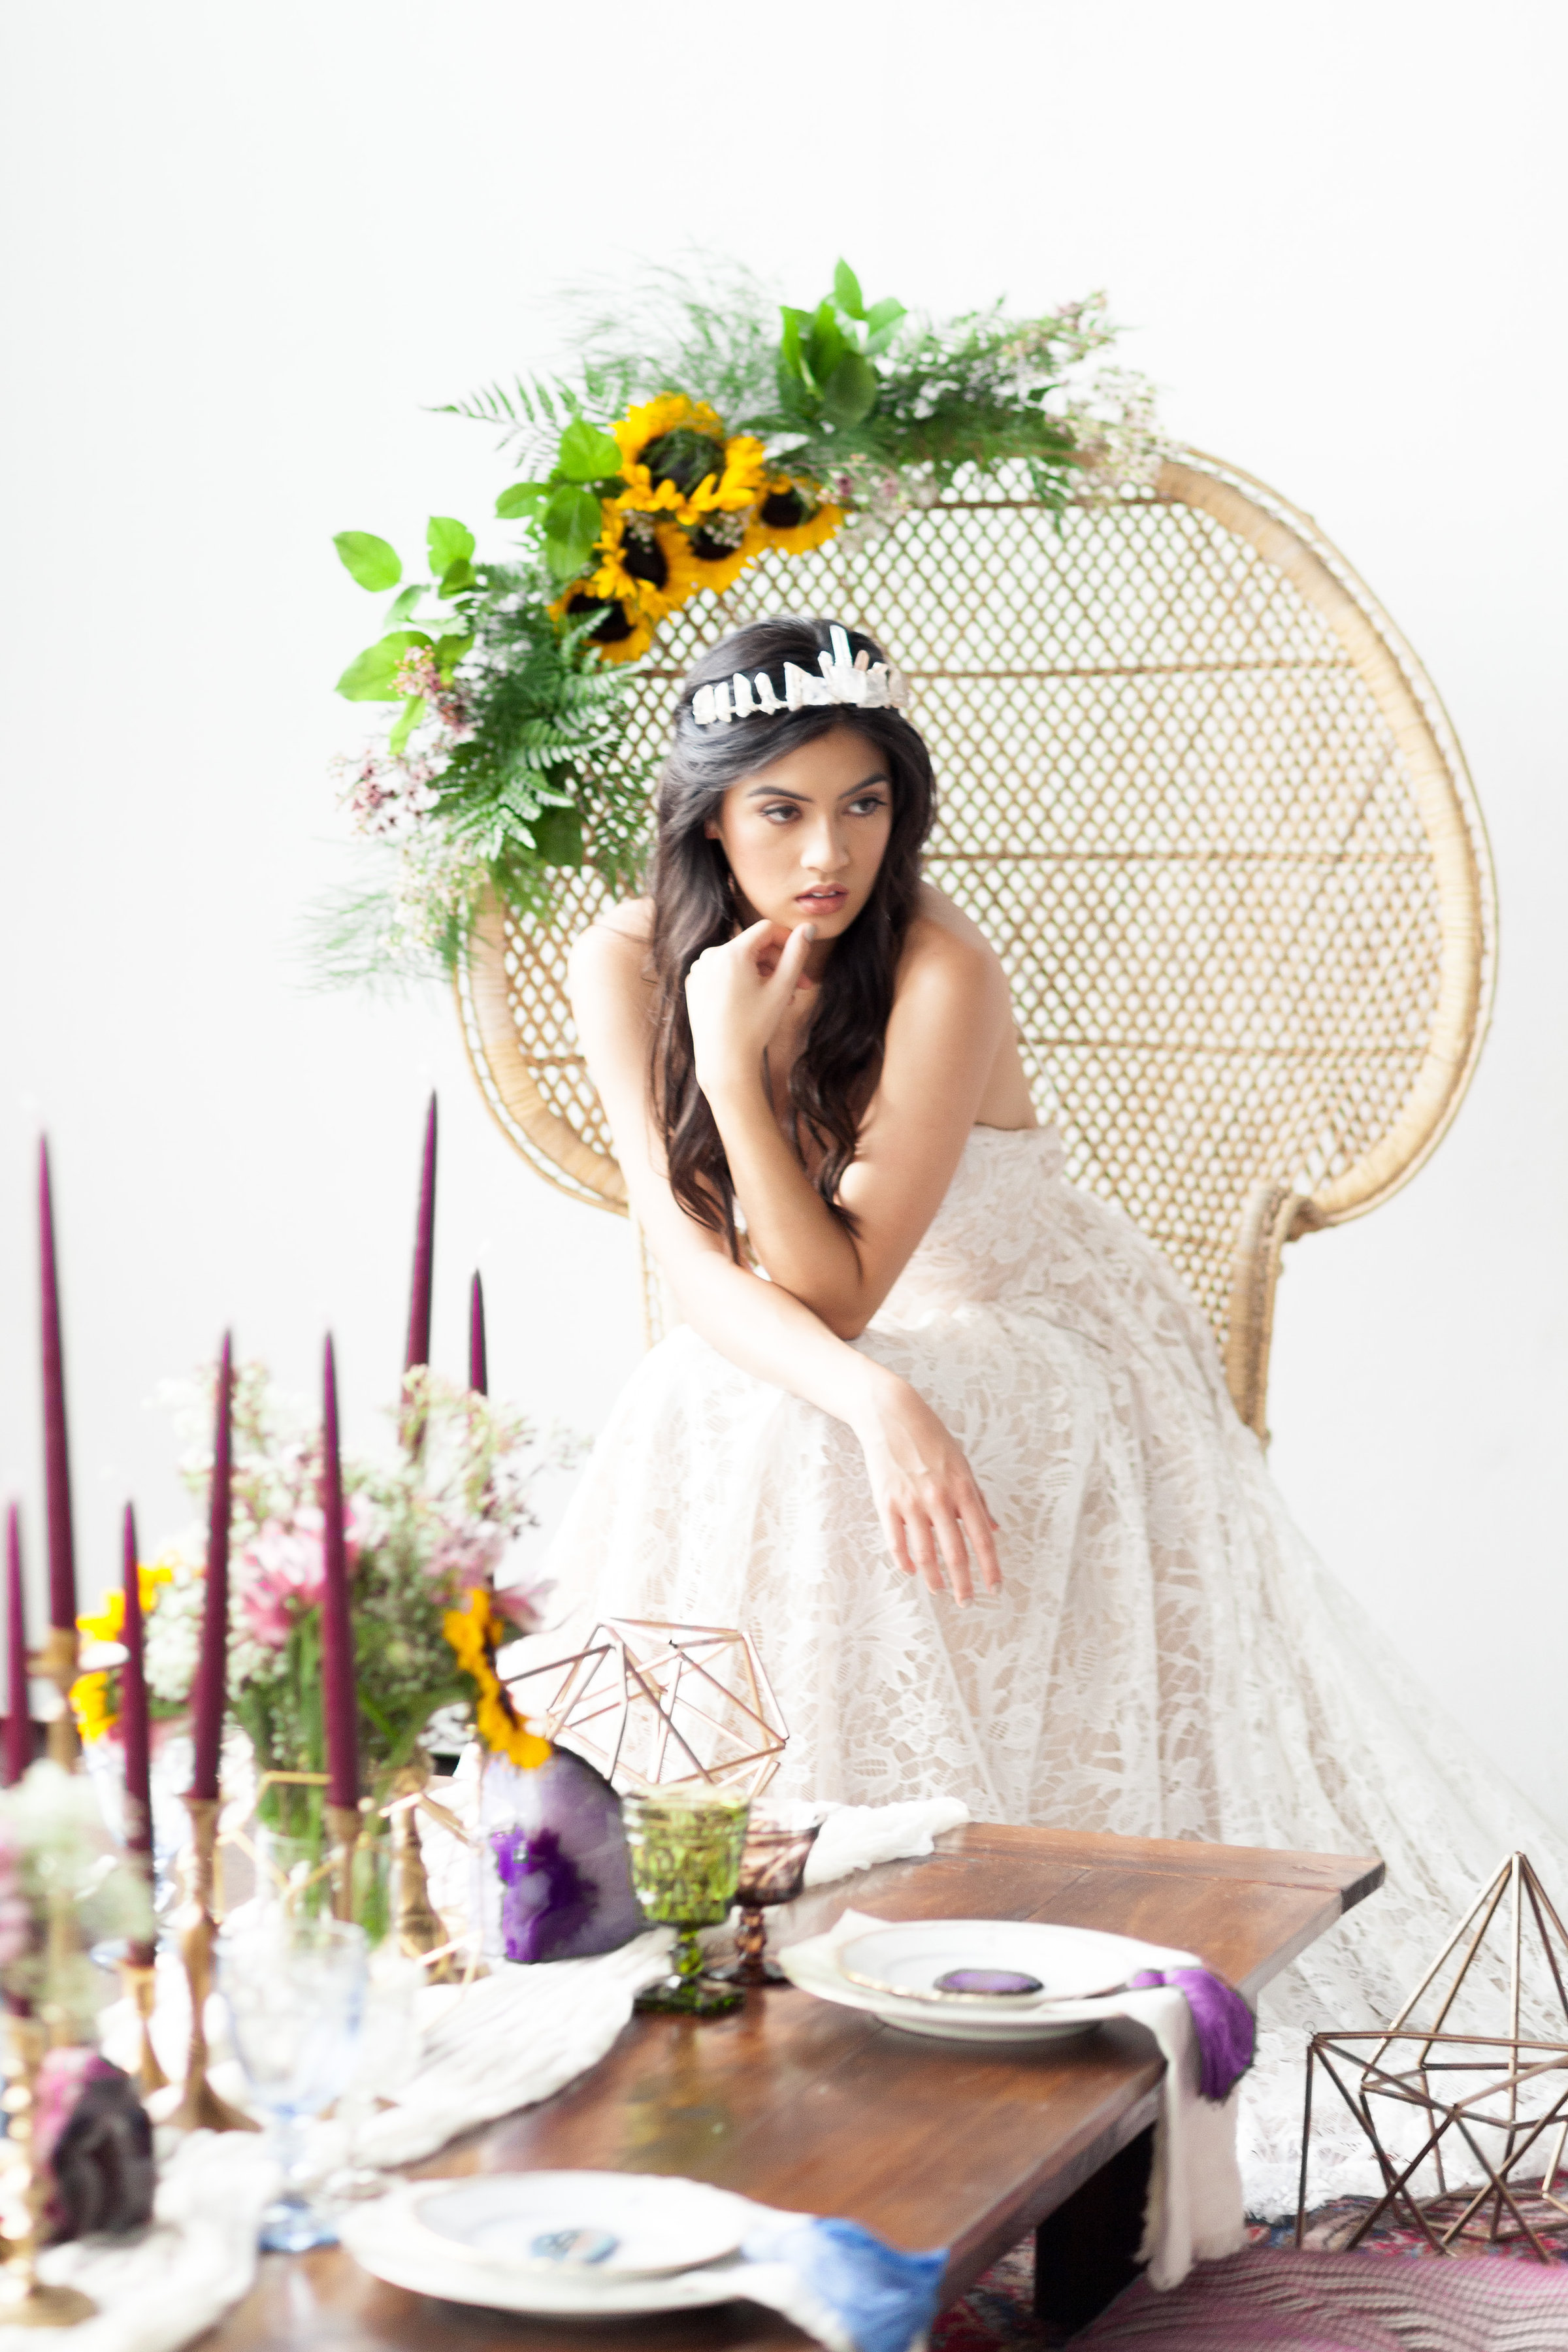 Perry-Rose-Media-Styled-Shoot-by-Morgan-Anderson-Photography-165.jpg